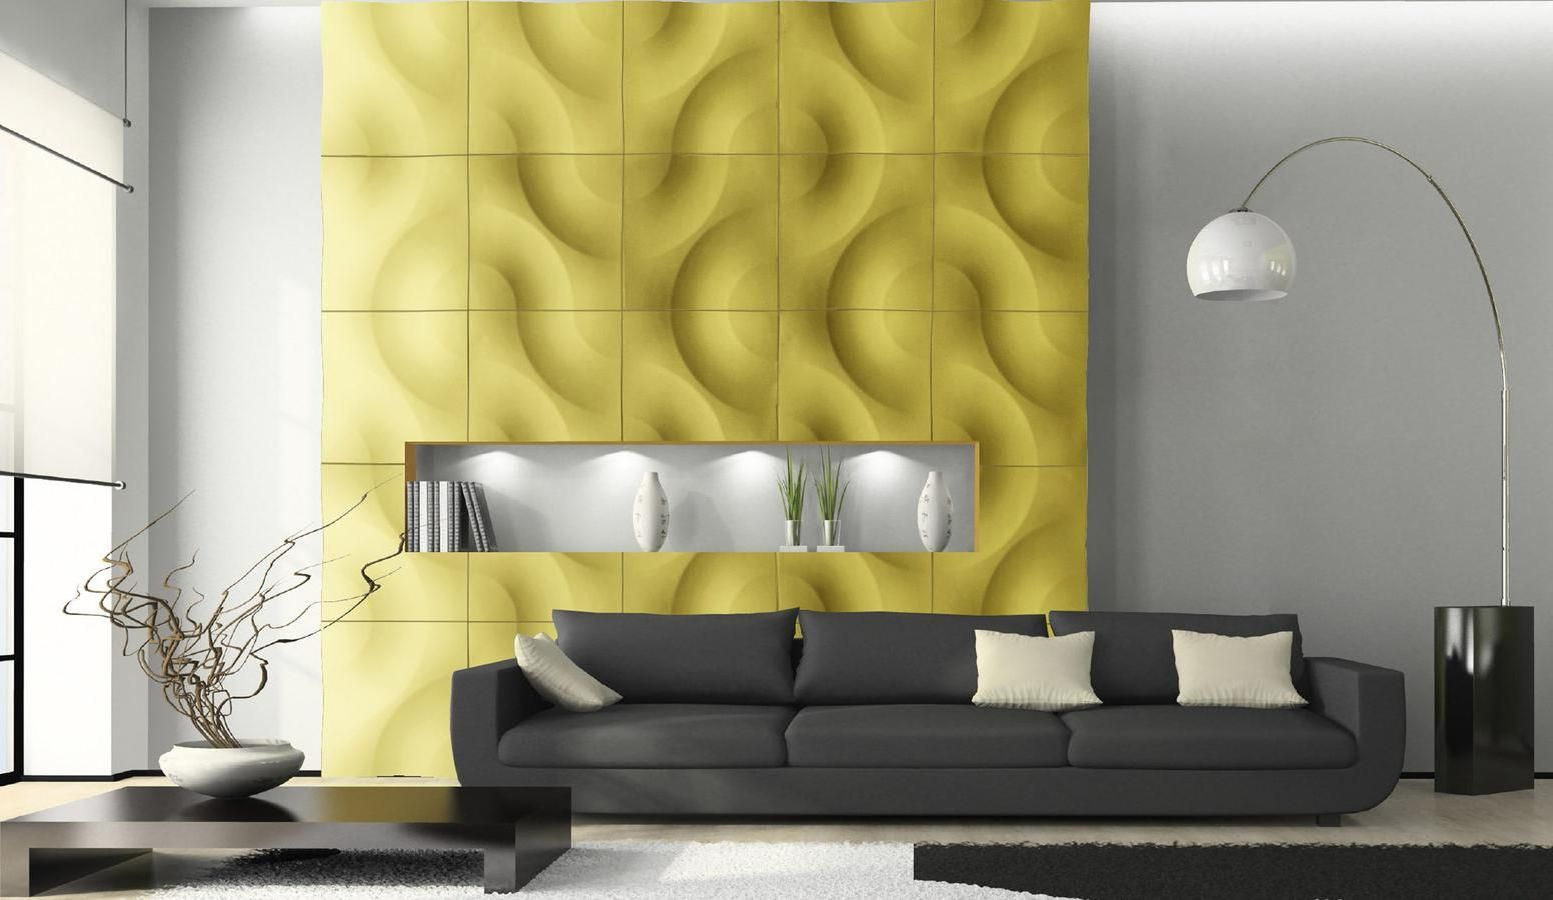 20 modern 3d Textured Wall Panel ideas | drawhome.com | Background ...